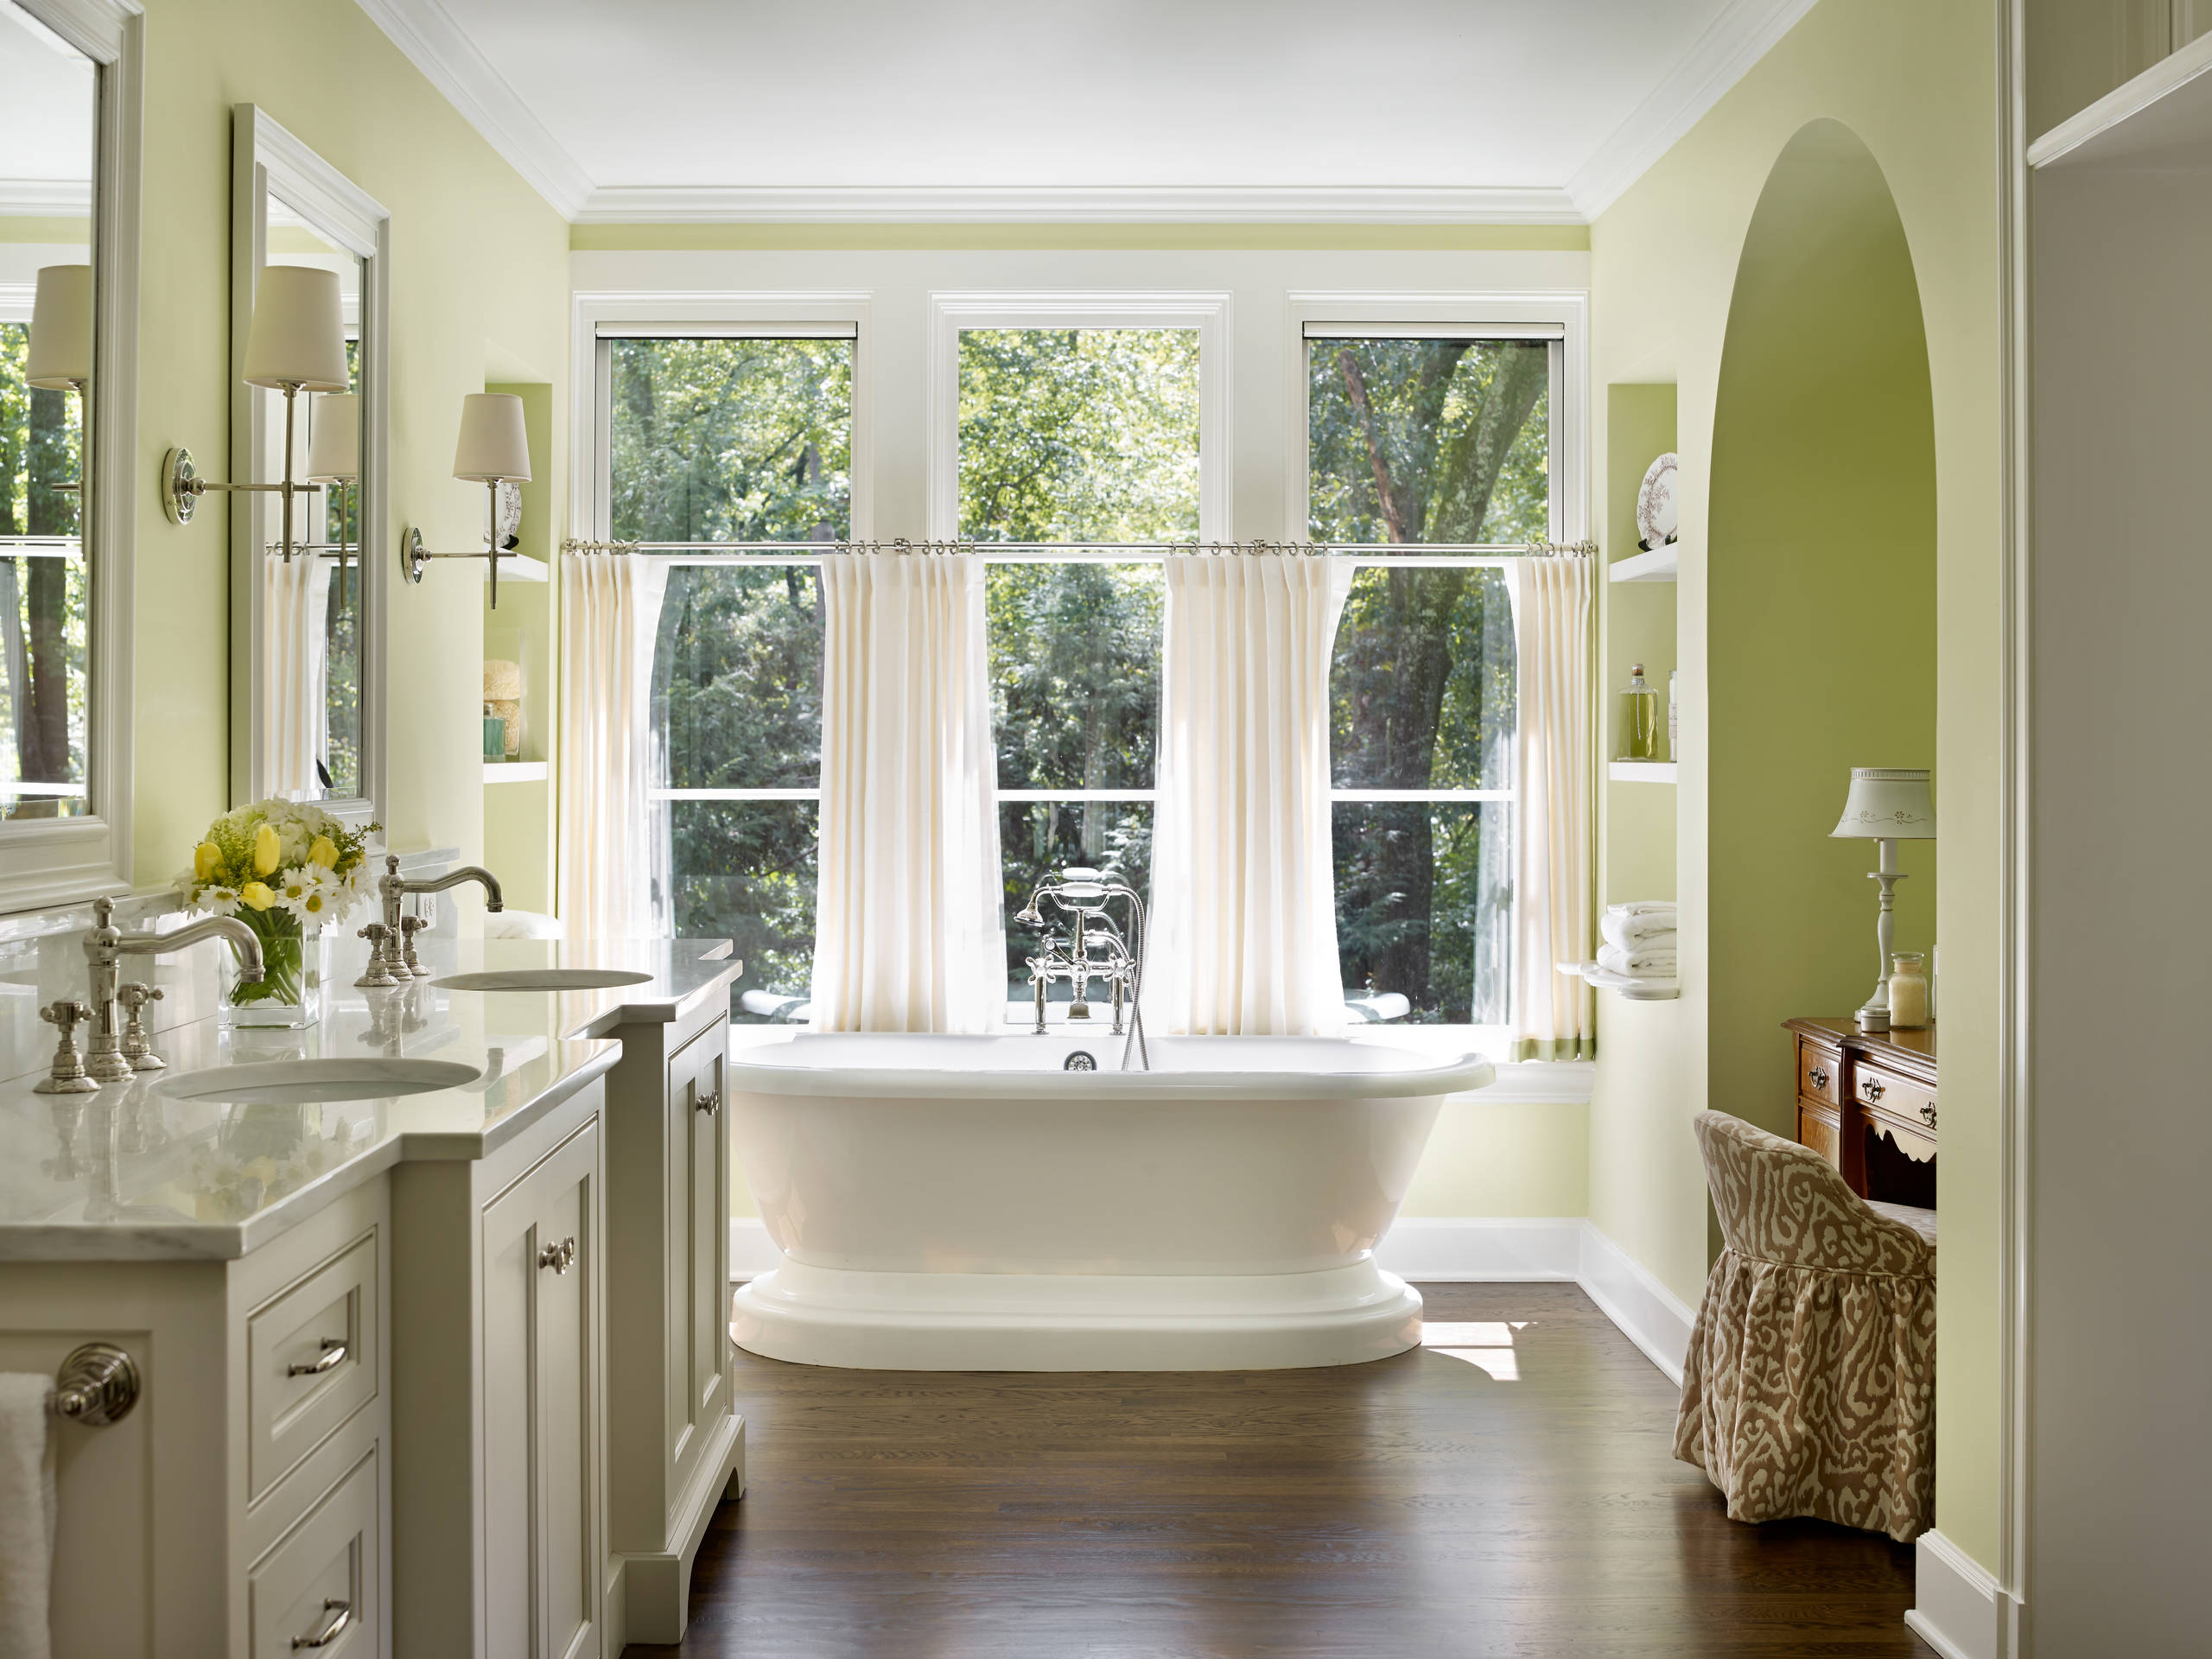 Have a nice shower with nice bathroom curtains